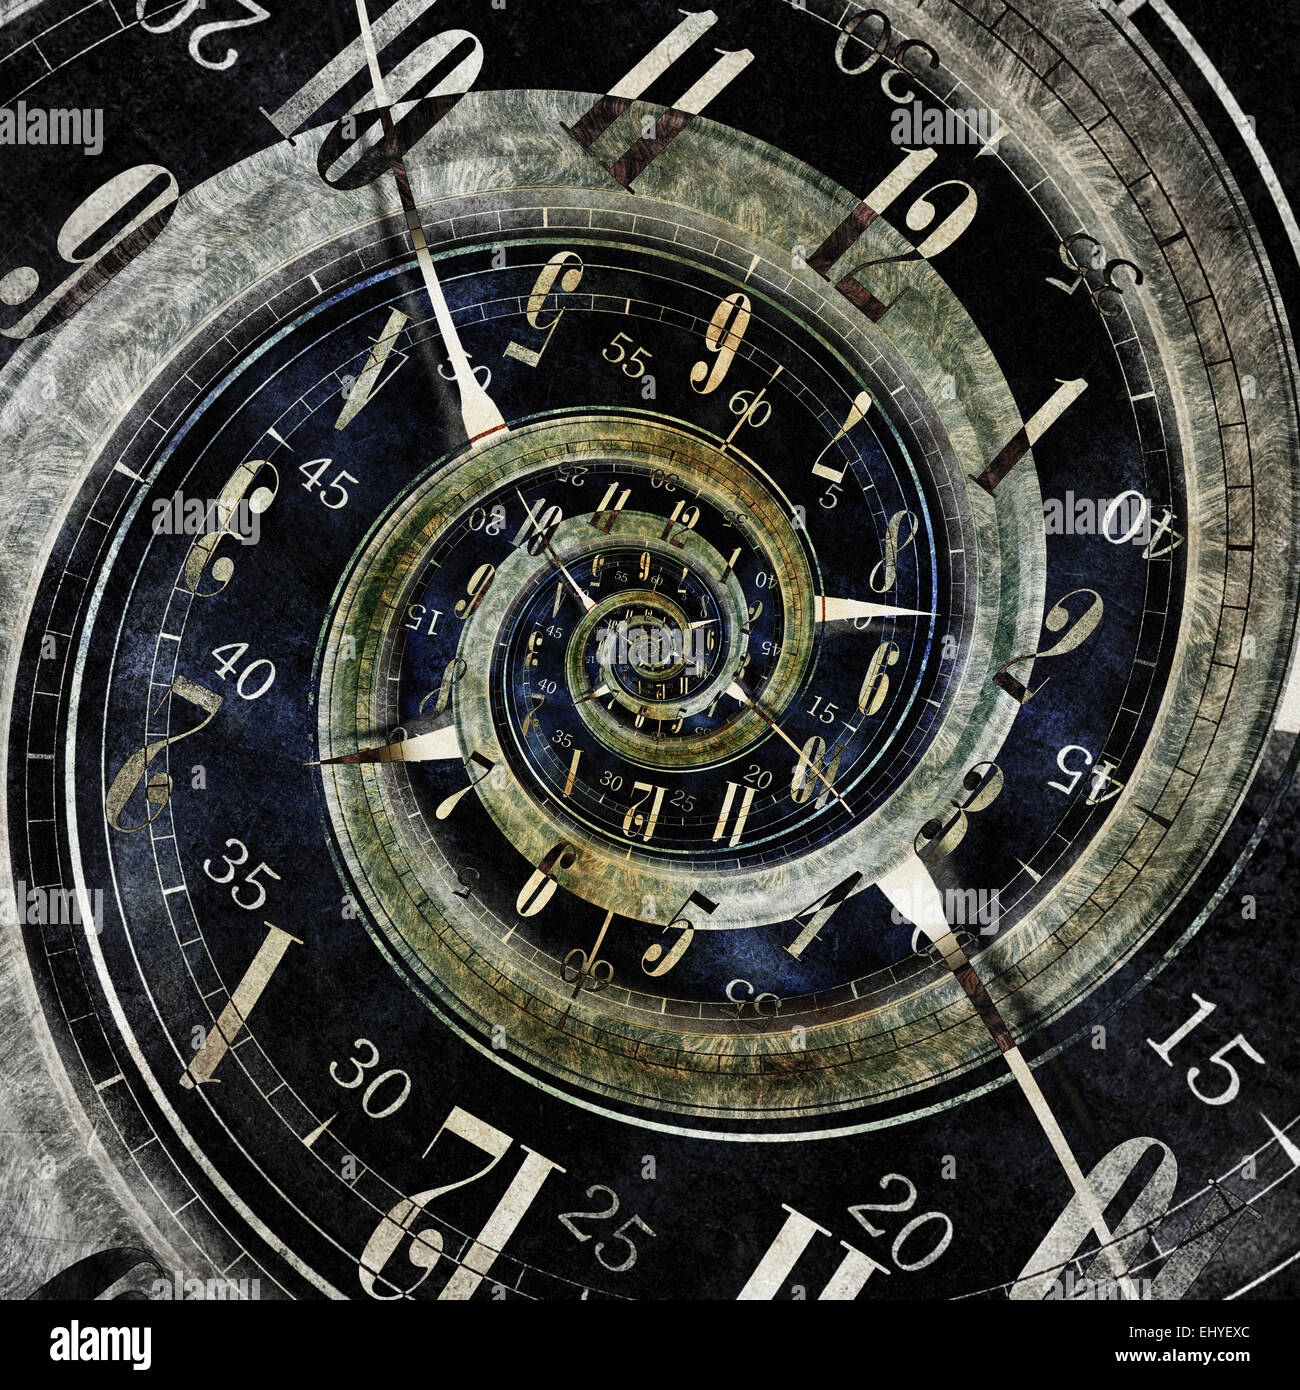 Endless Time Concept Illustration. Abstract Endless Clock Design. - Stock Image